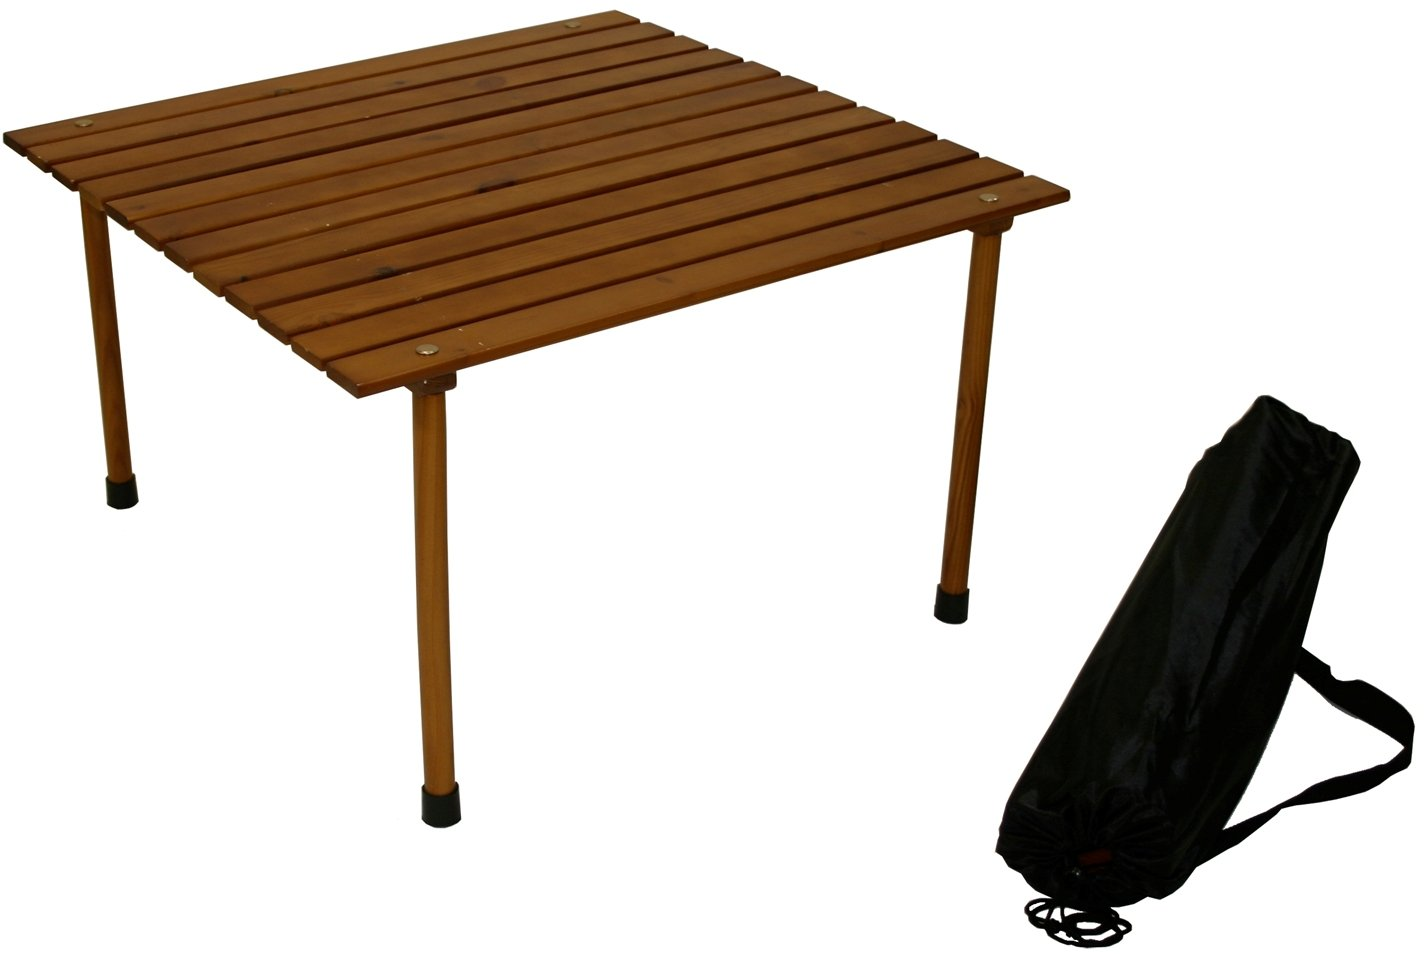 Ordinaire Amazon.com : Table In A Bag W2817 Low Wood Portable Table With Carrying  Bag, Brown : Folding Patio Tables : Garden U0026 Outdoor